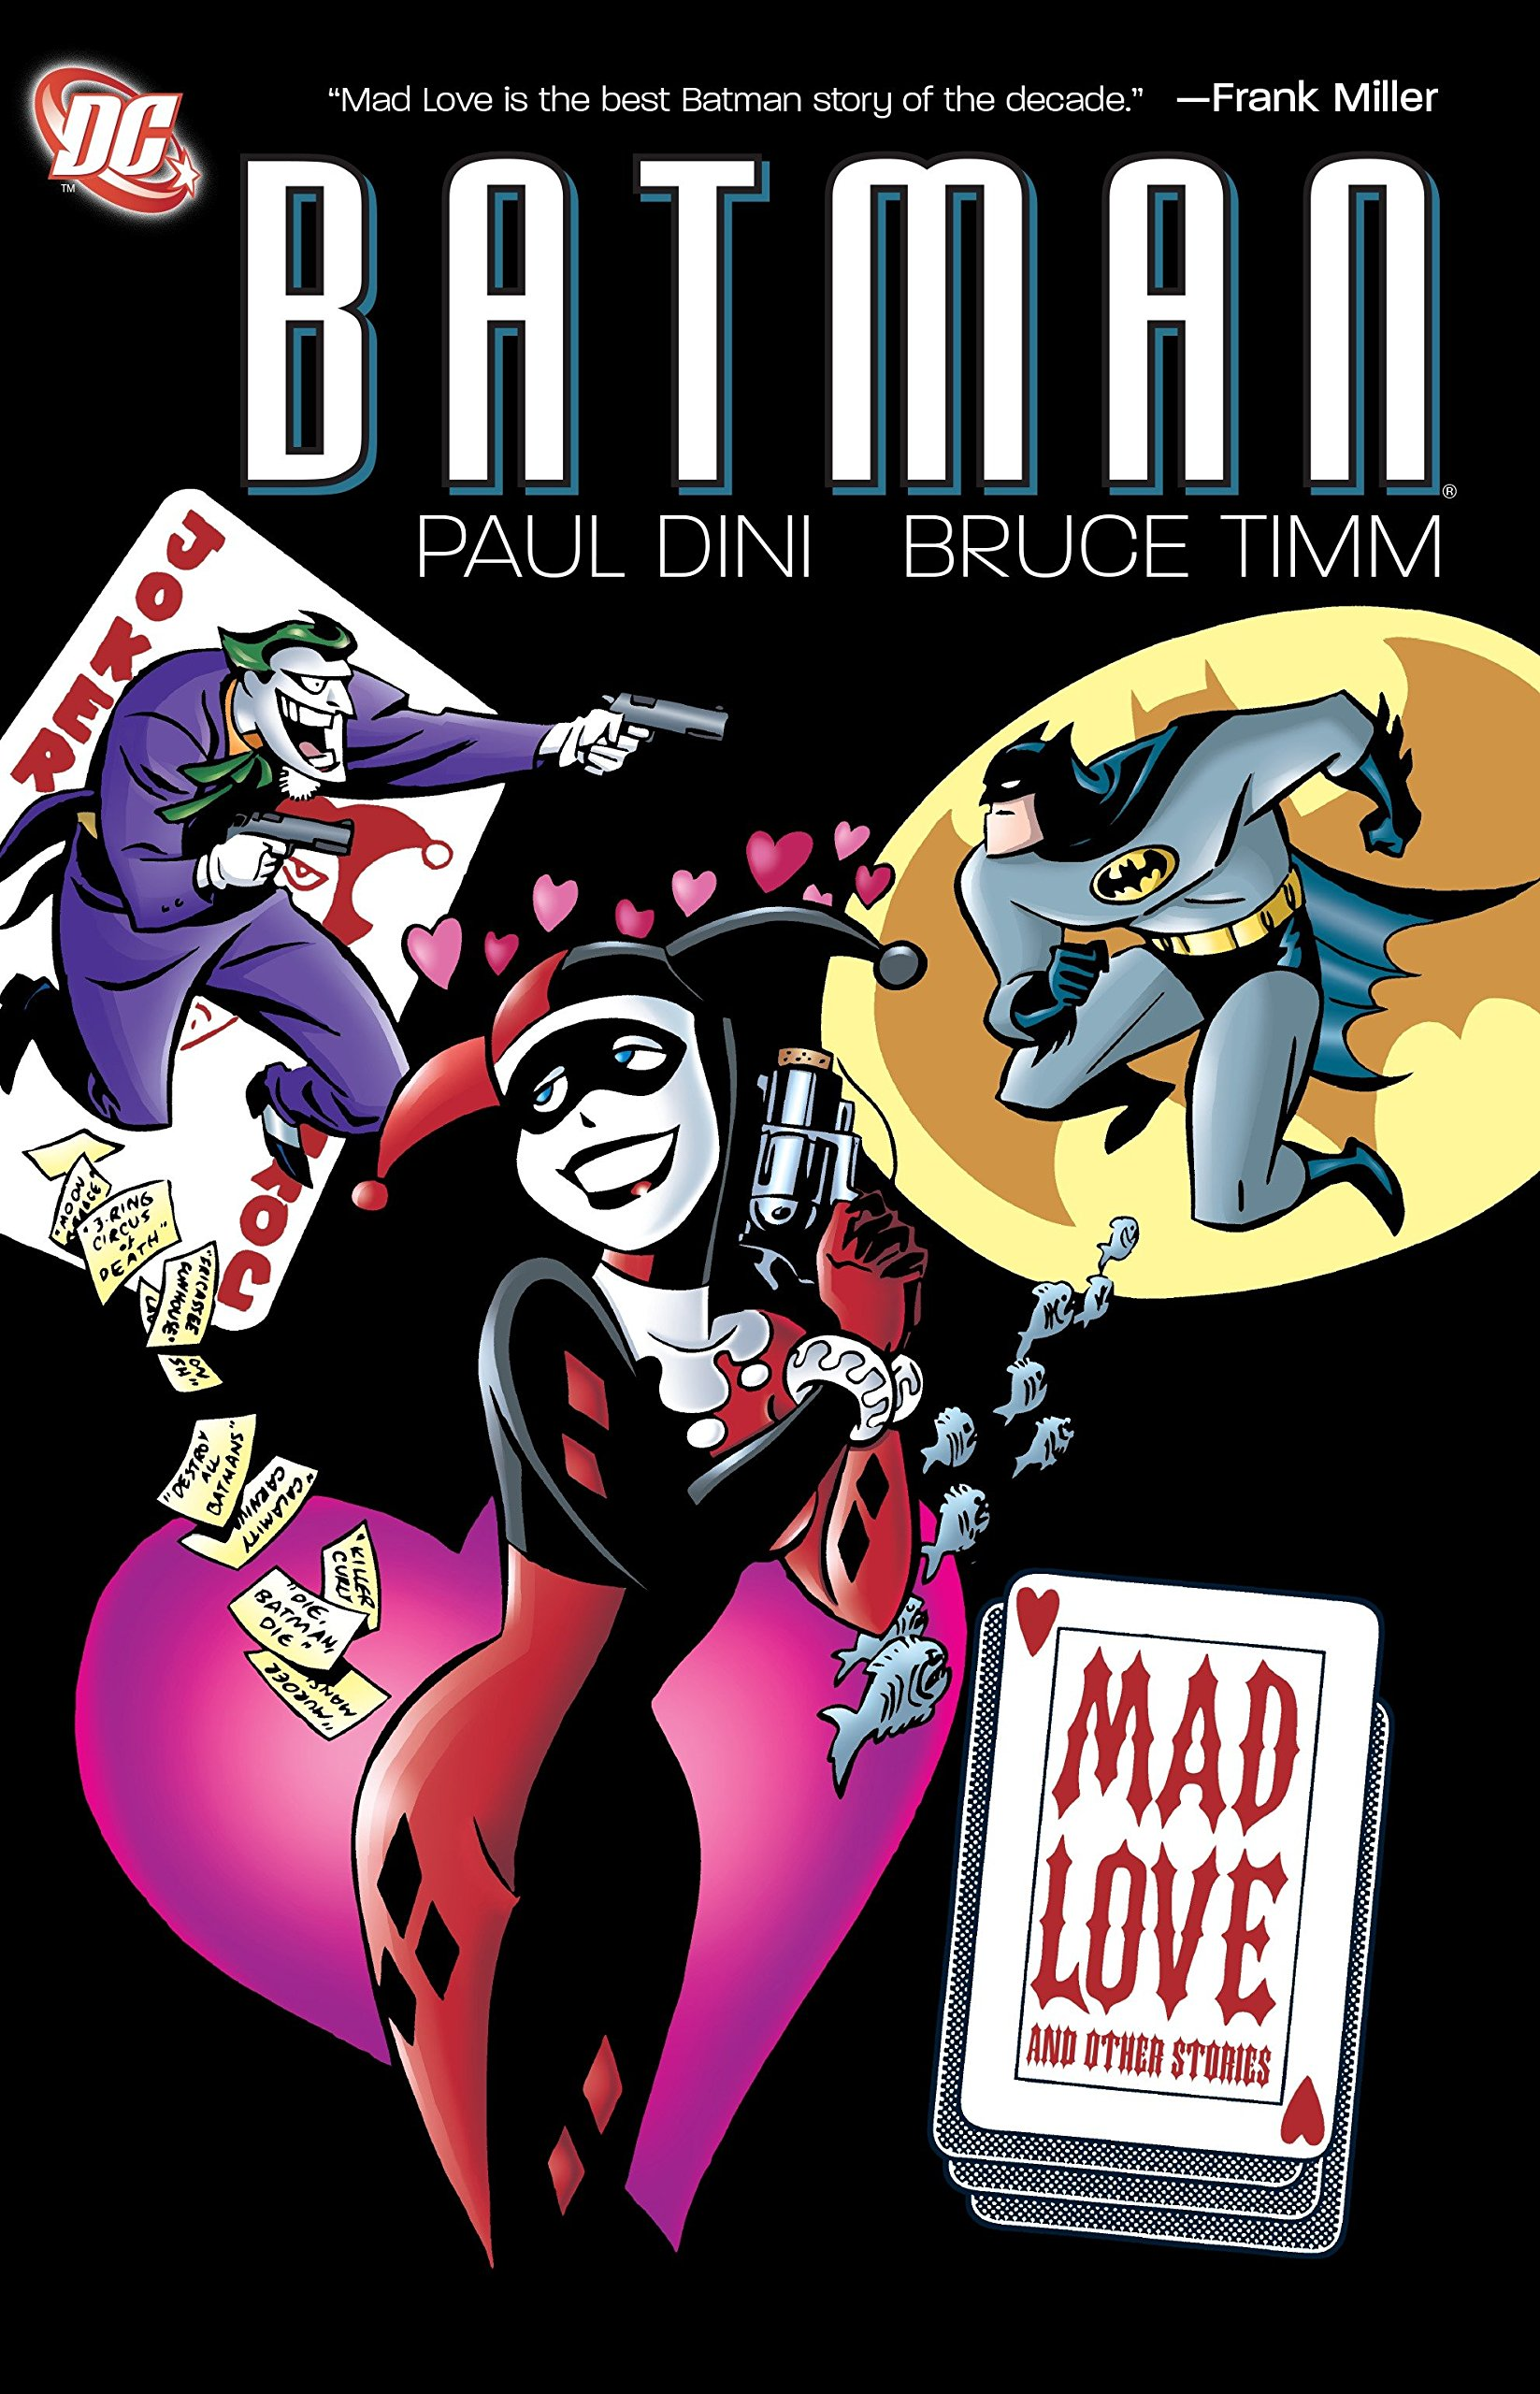 Celebrate Everyone's Favorite Antihero Harley Quinn With These Signed Books To Benefit CBLDF!